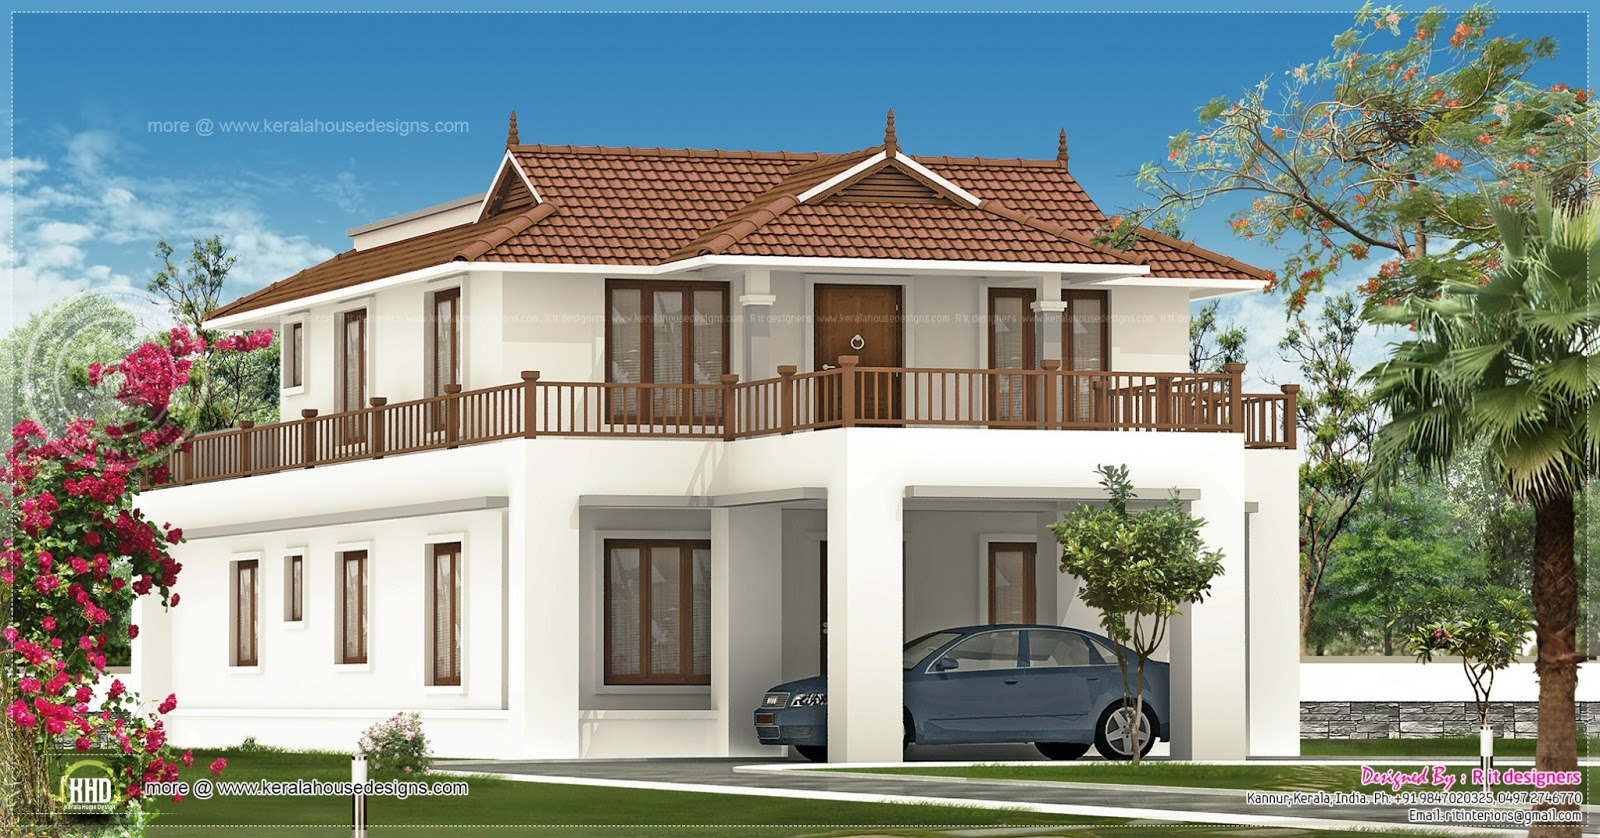 2820 square feet house exterior design home kerala plans - Exterior house painting designs design ...